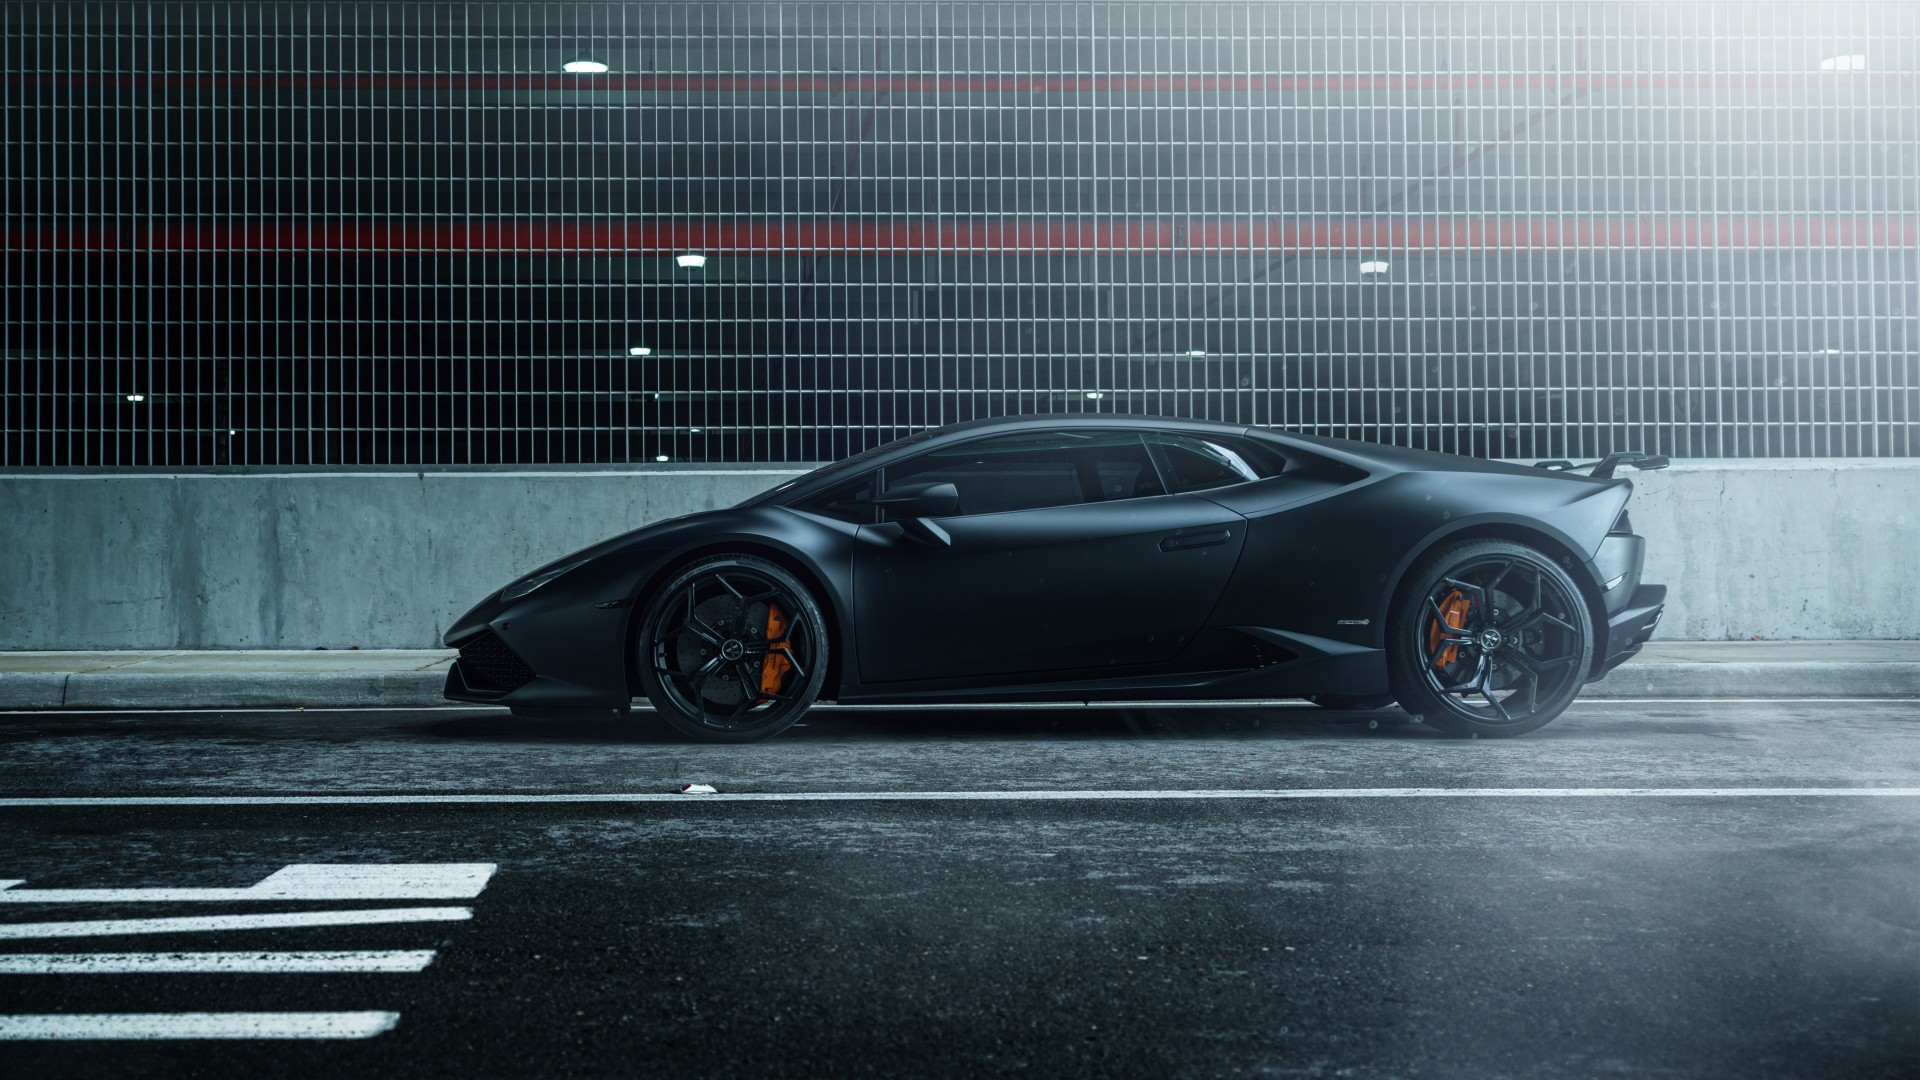 Lamborghini huracan vellano mc matte black 4k wallpaper - Wallpaper hd 4k car ...